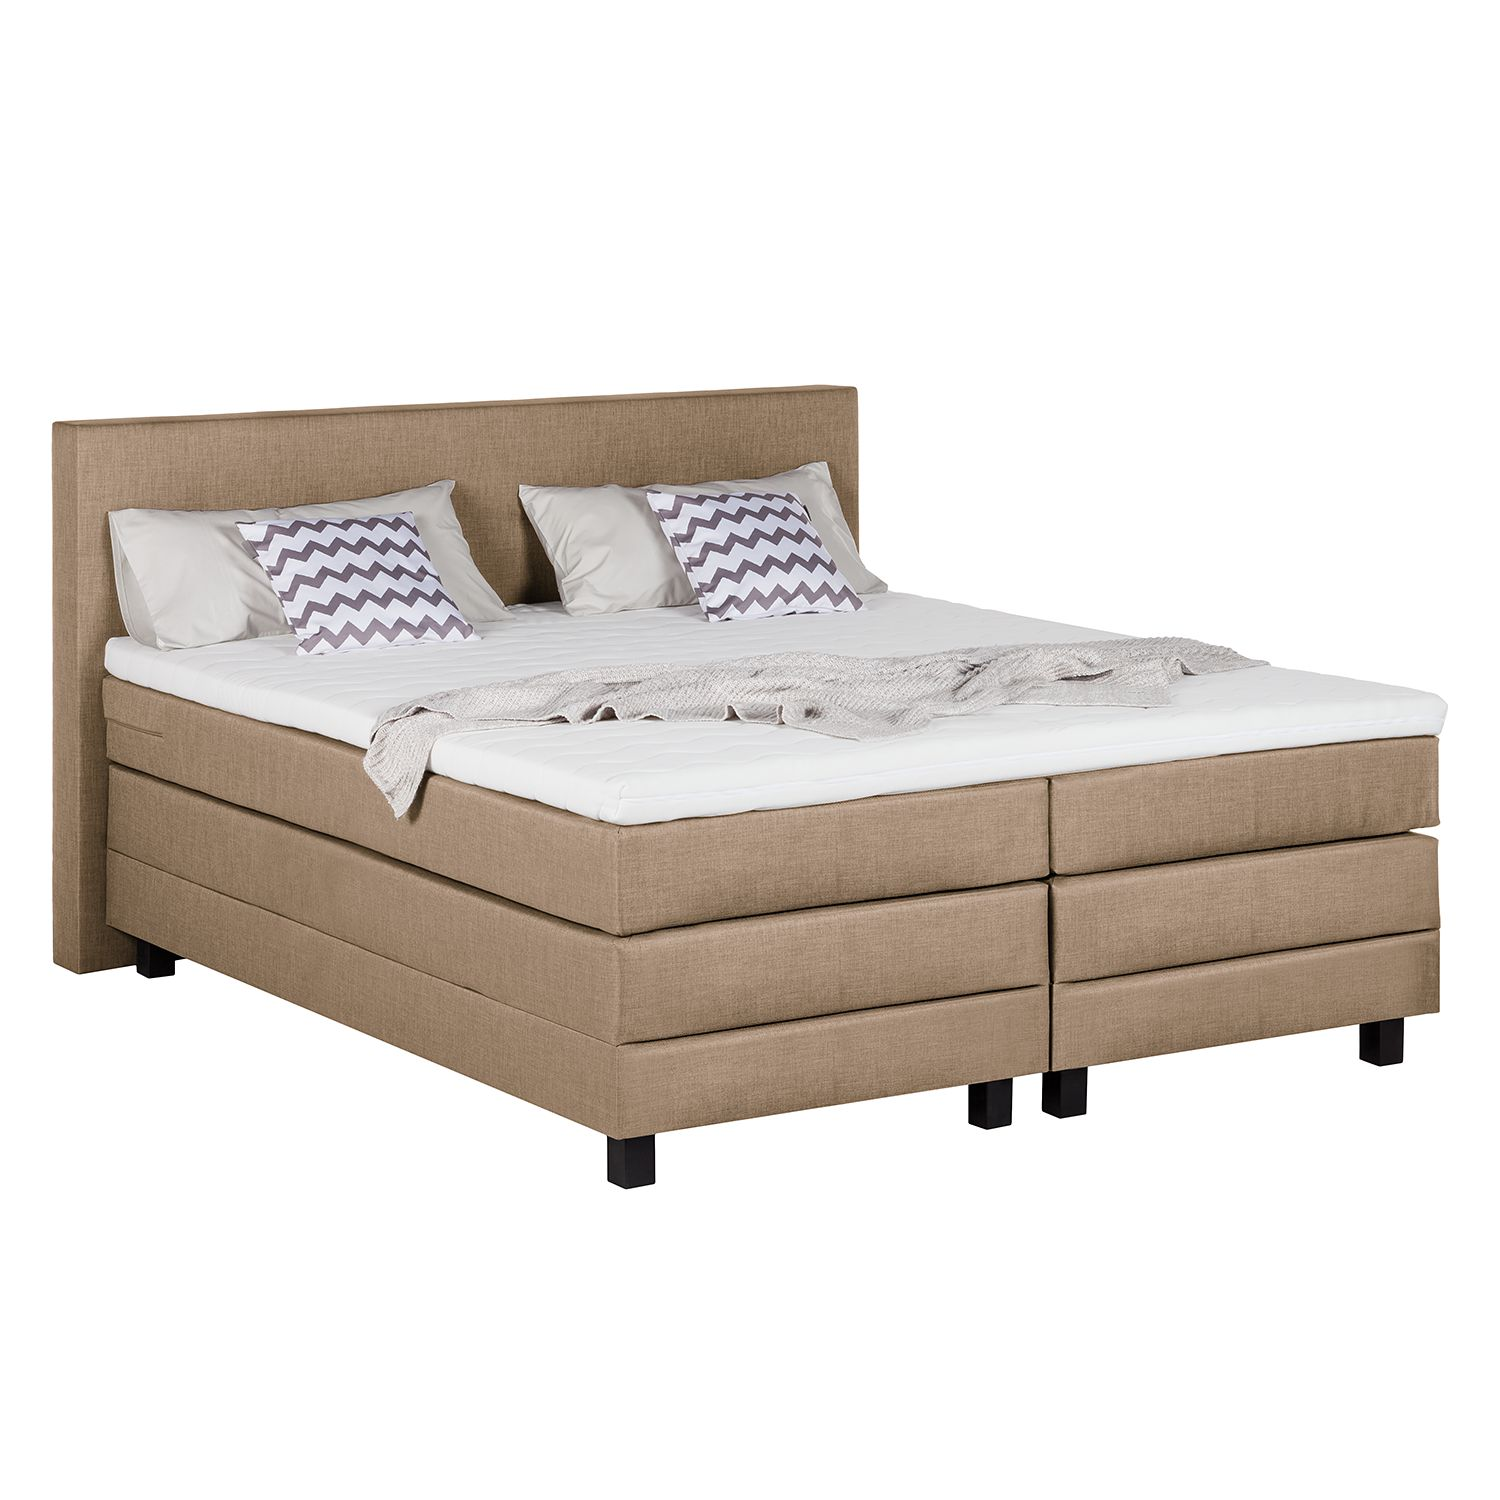 Lit boxspring Splendid Night - 200 x 200cm - D2 jusqu'à 80 kg - Taupe, Grand Selection